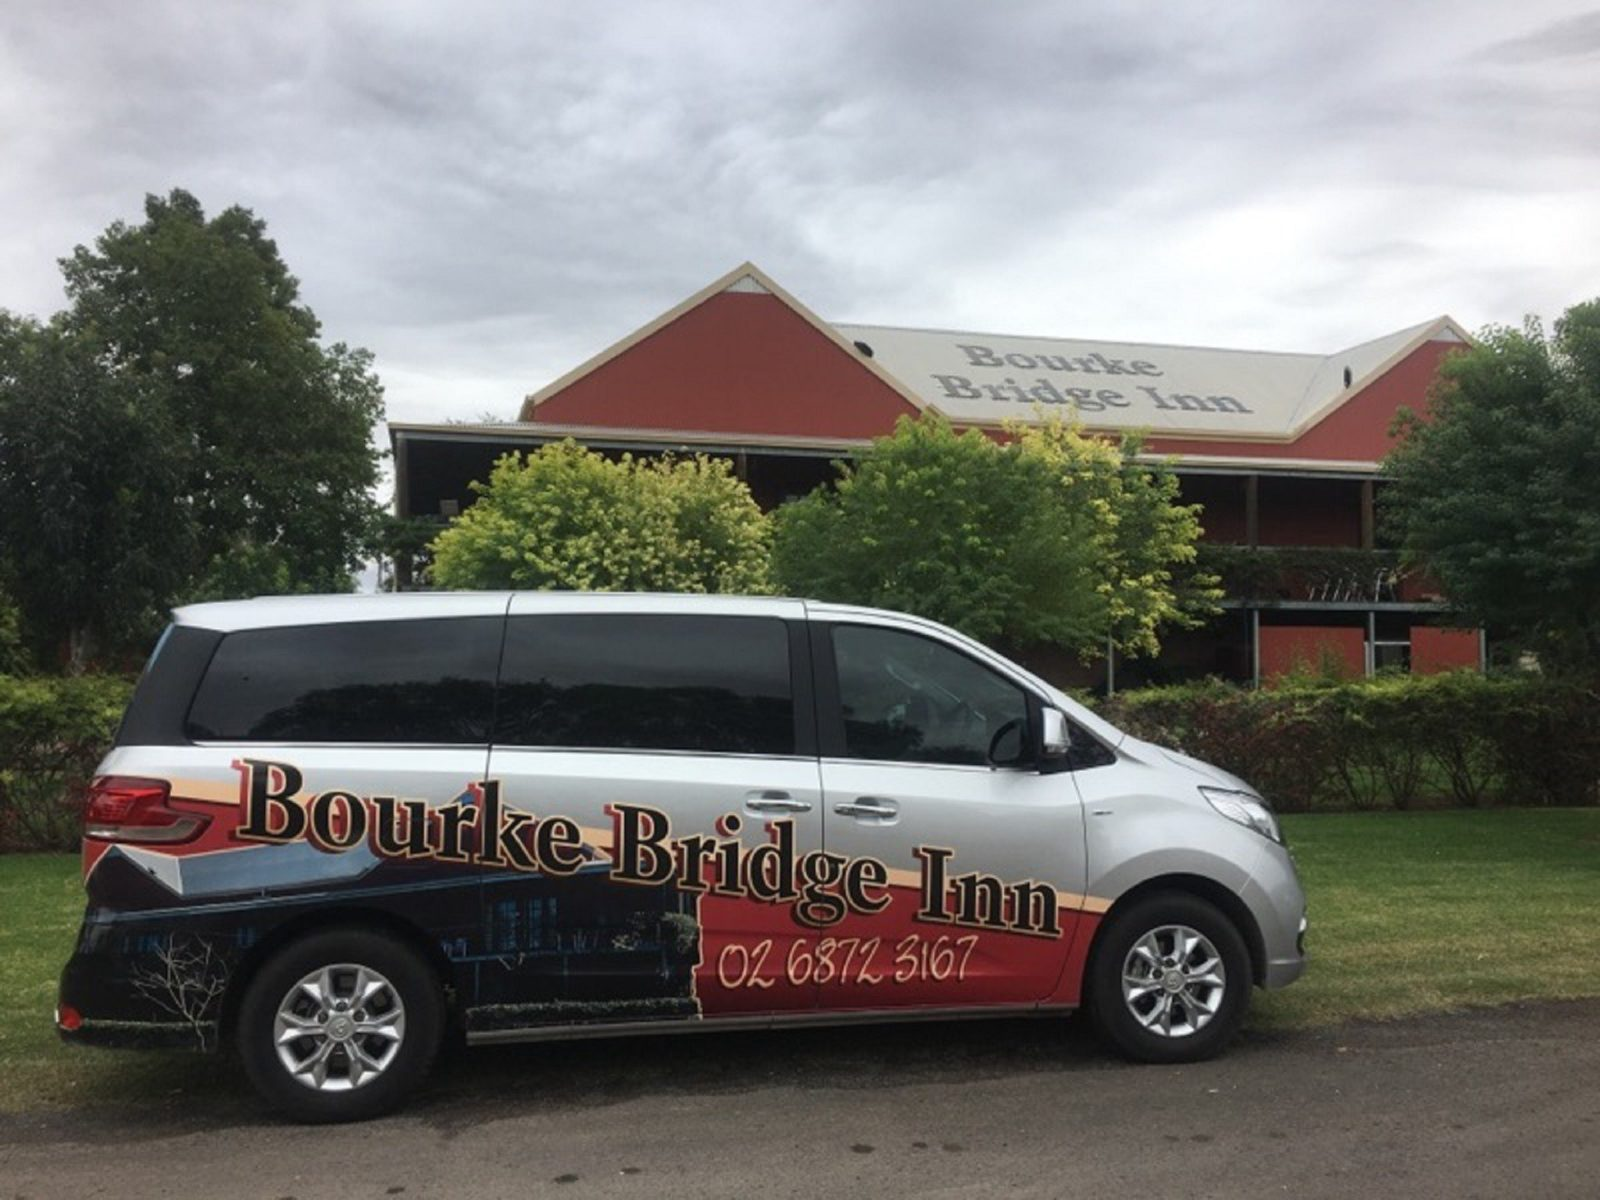 Bourke Bridge Inn